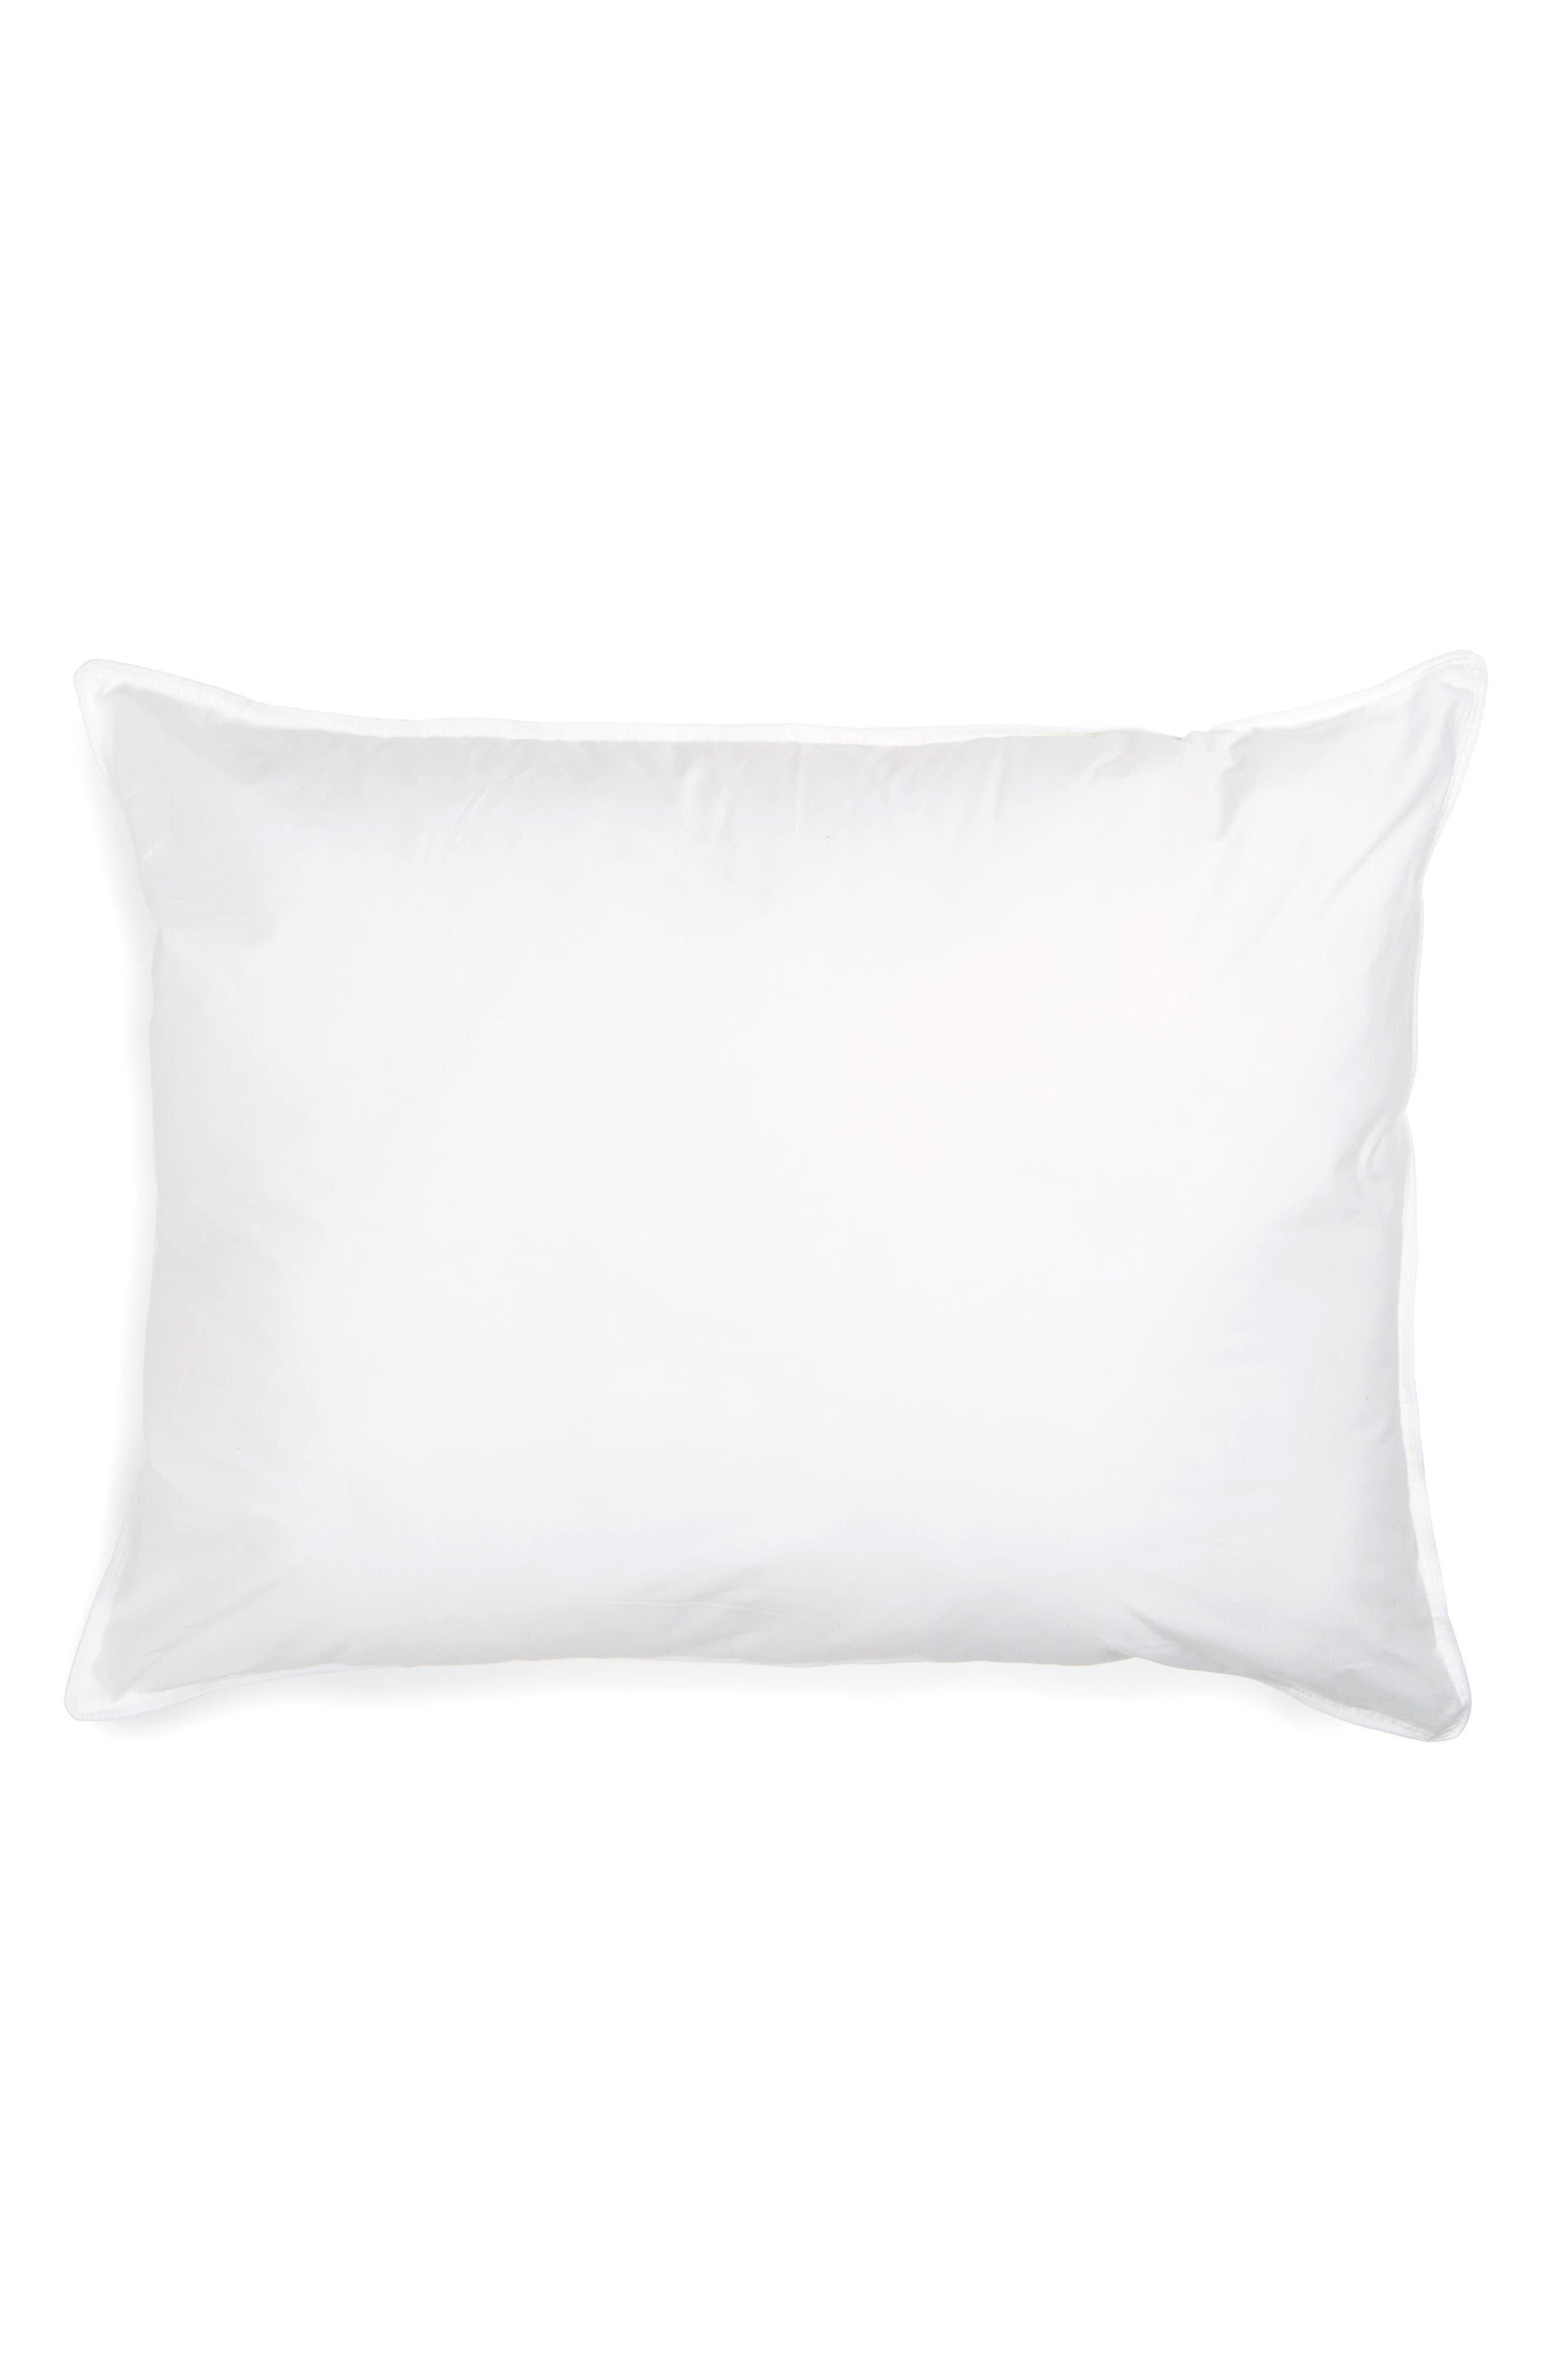 Alternate Image 1 Selected - Westin At Home 'Home Collection' Hypoallergenic Pillow